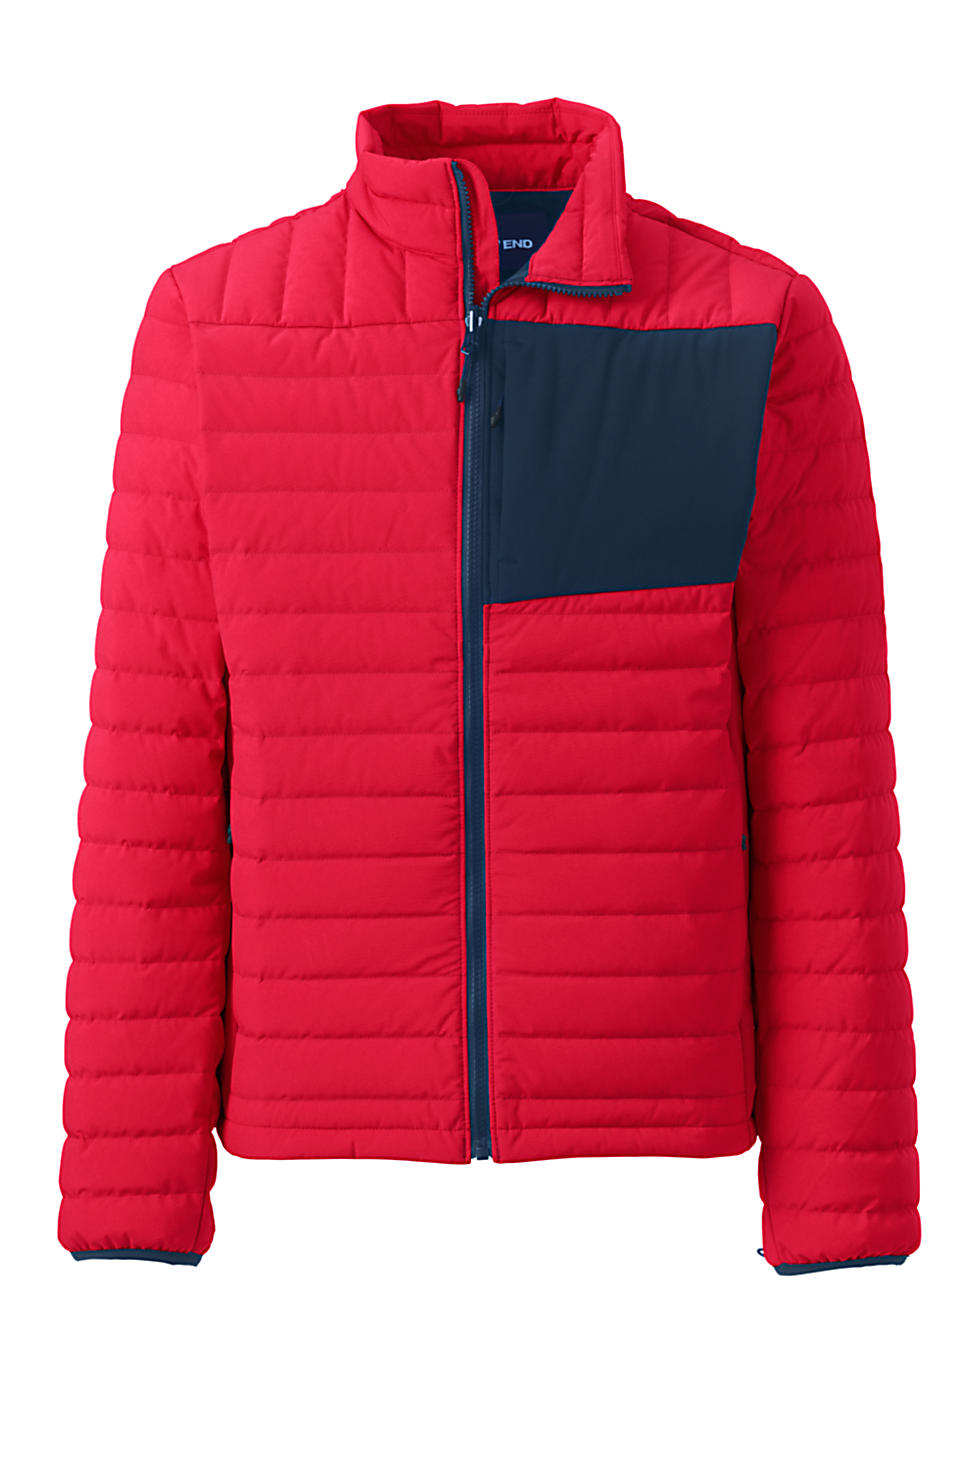 Lands End Mens Packable 800 Down Jacket (various colors/sizes)